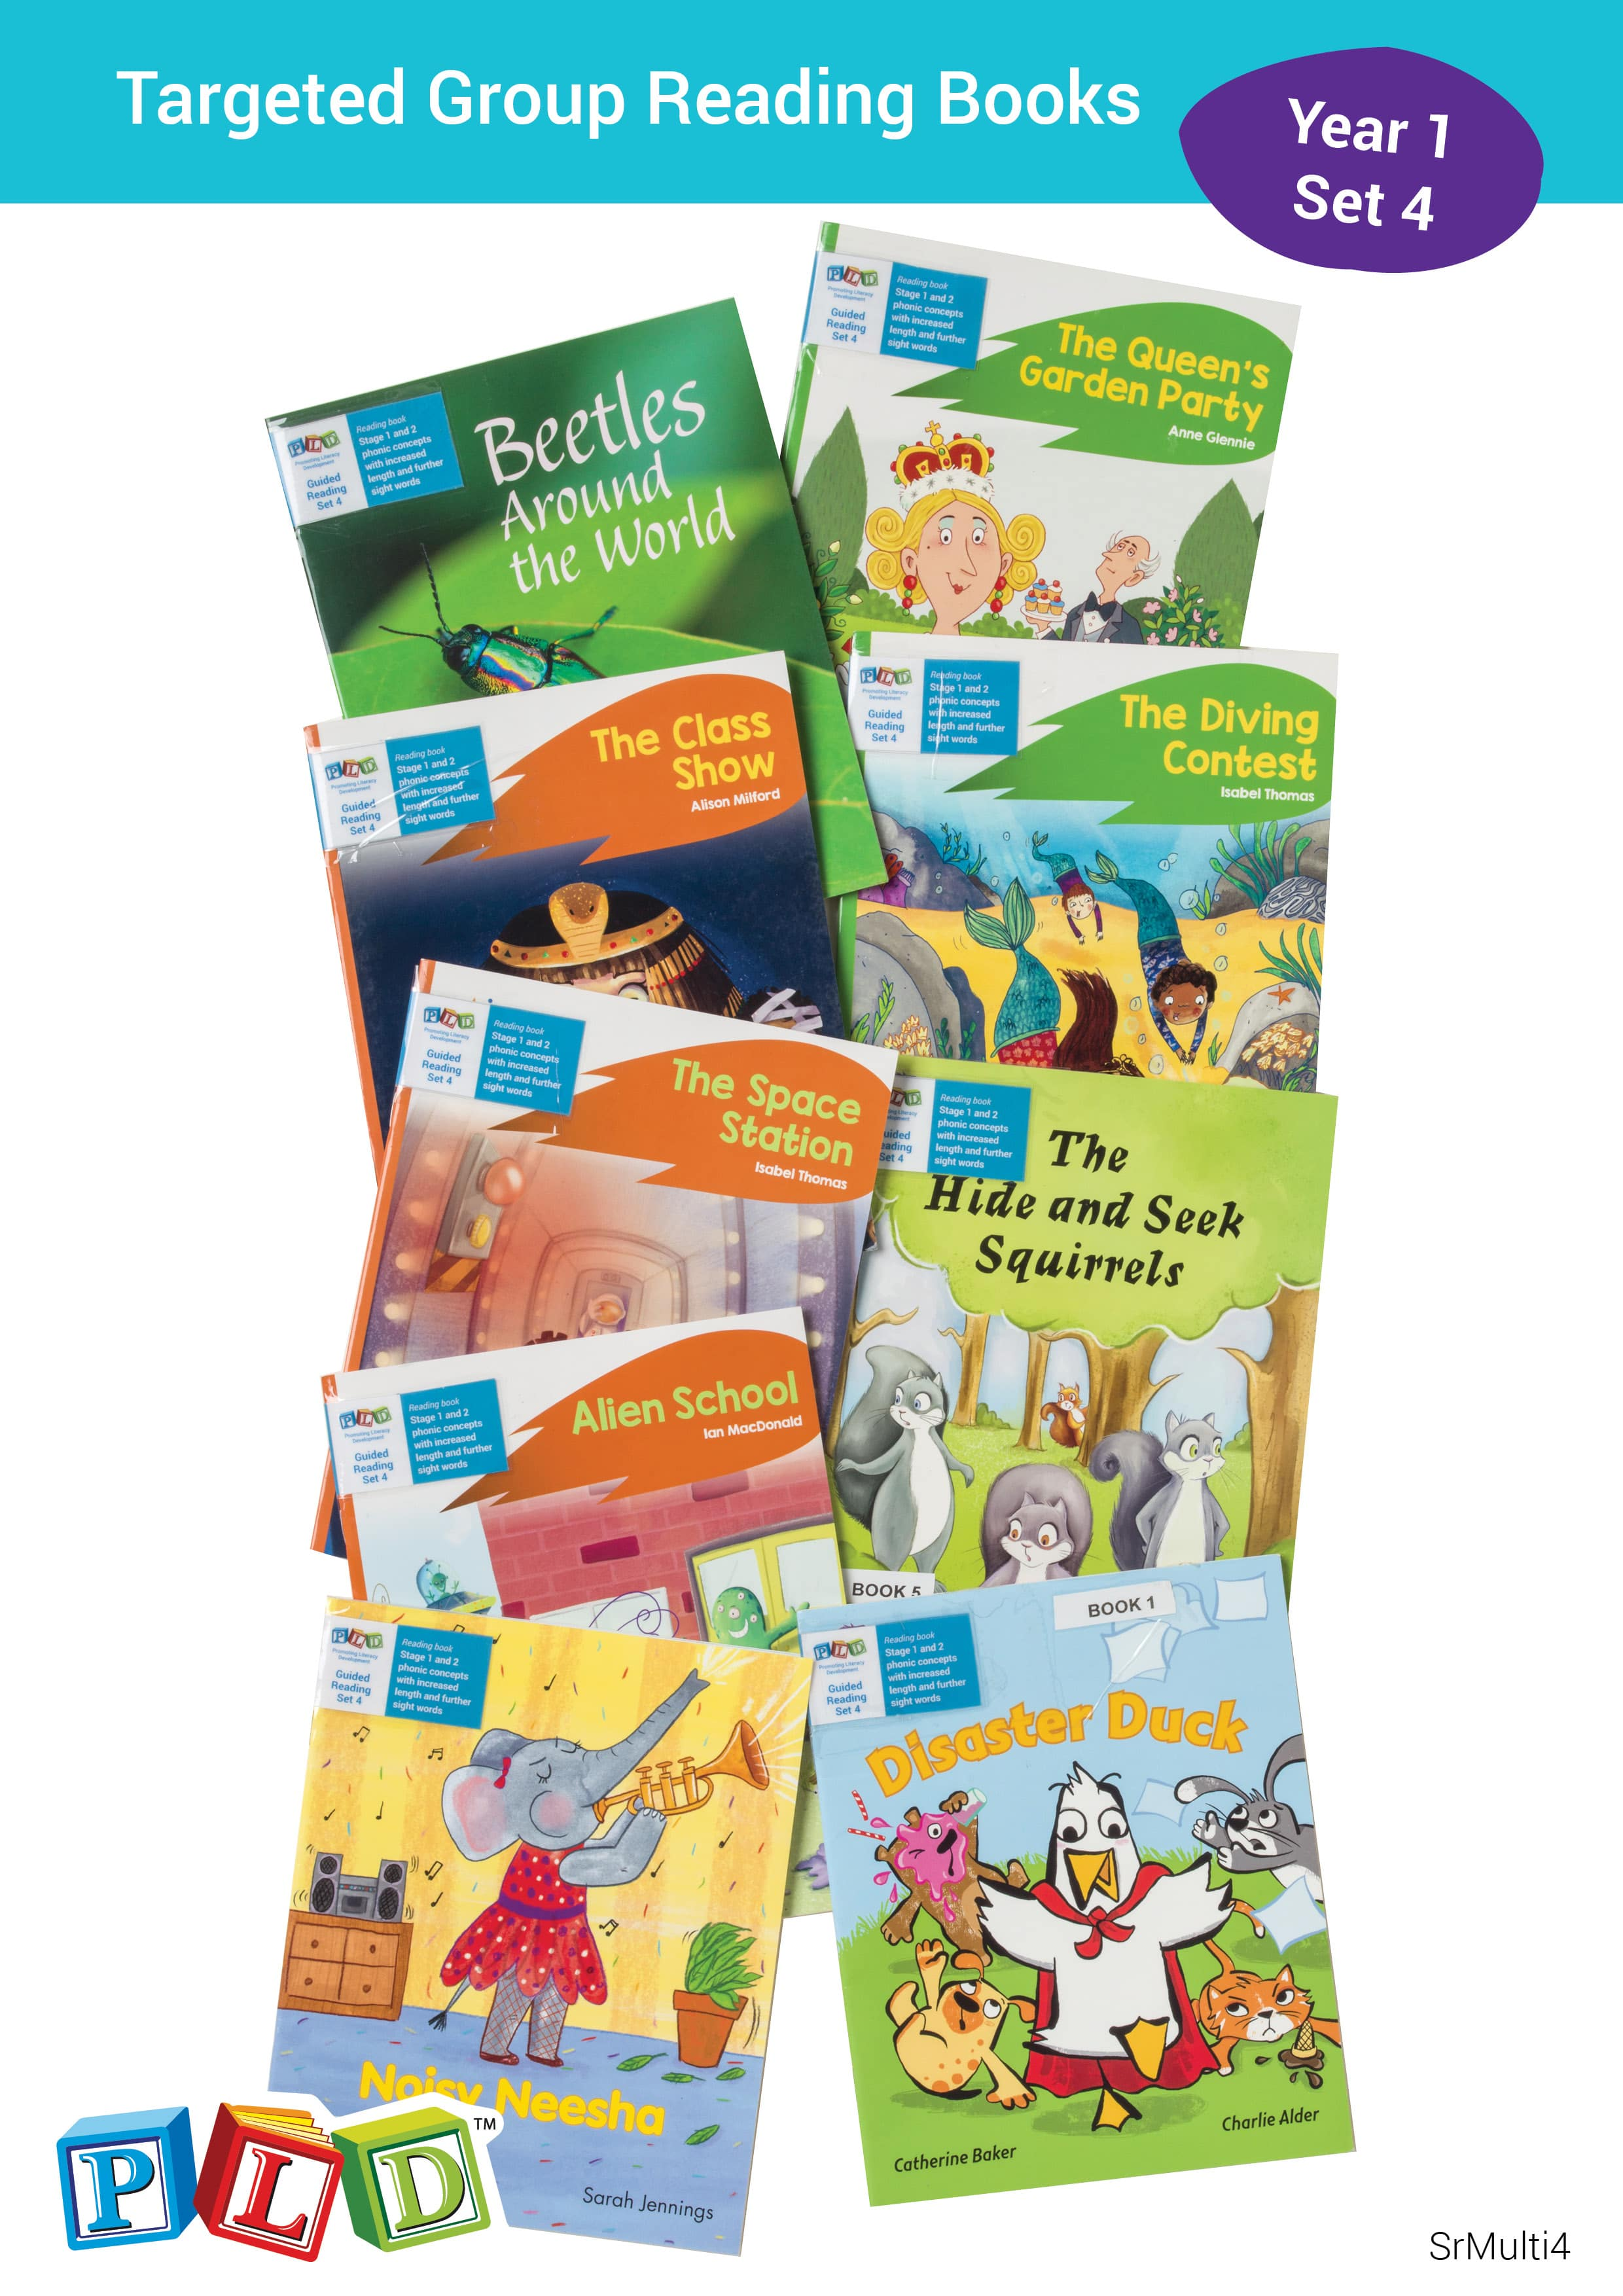 Targeted Group Reading Books Set 4